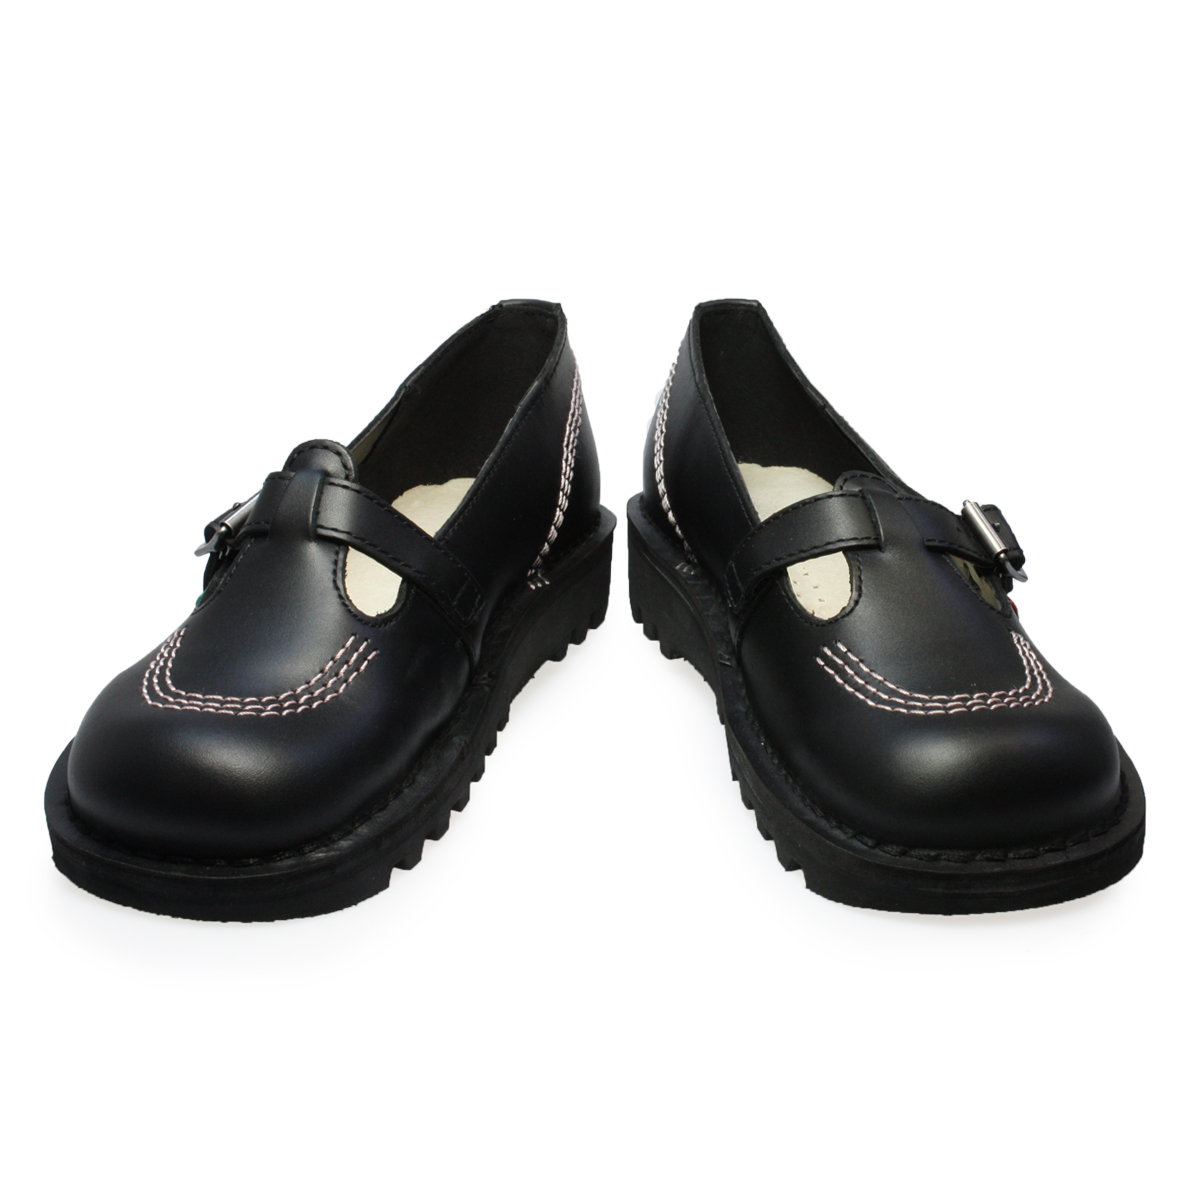 kickers kick lo t leather womens school buckle